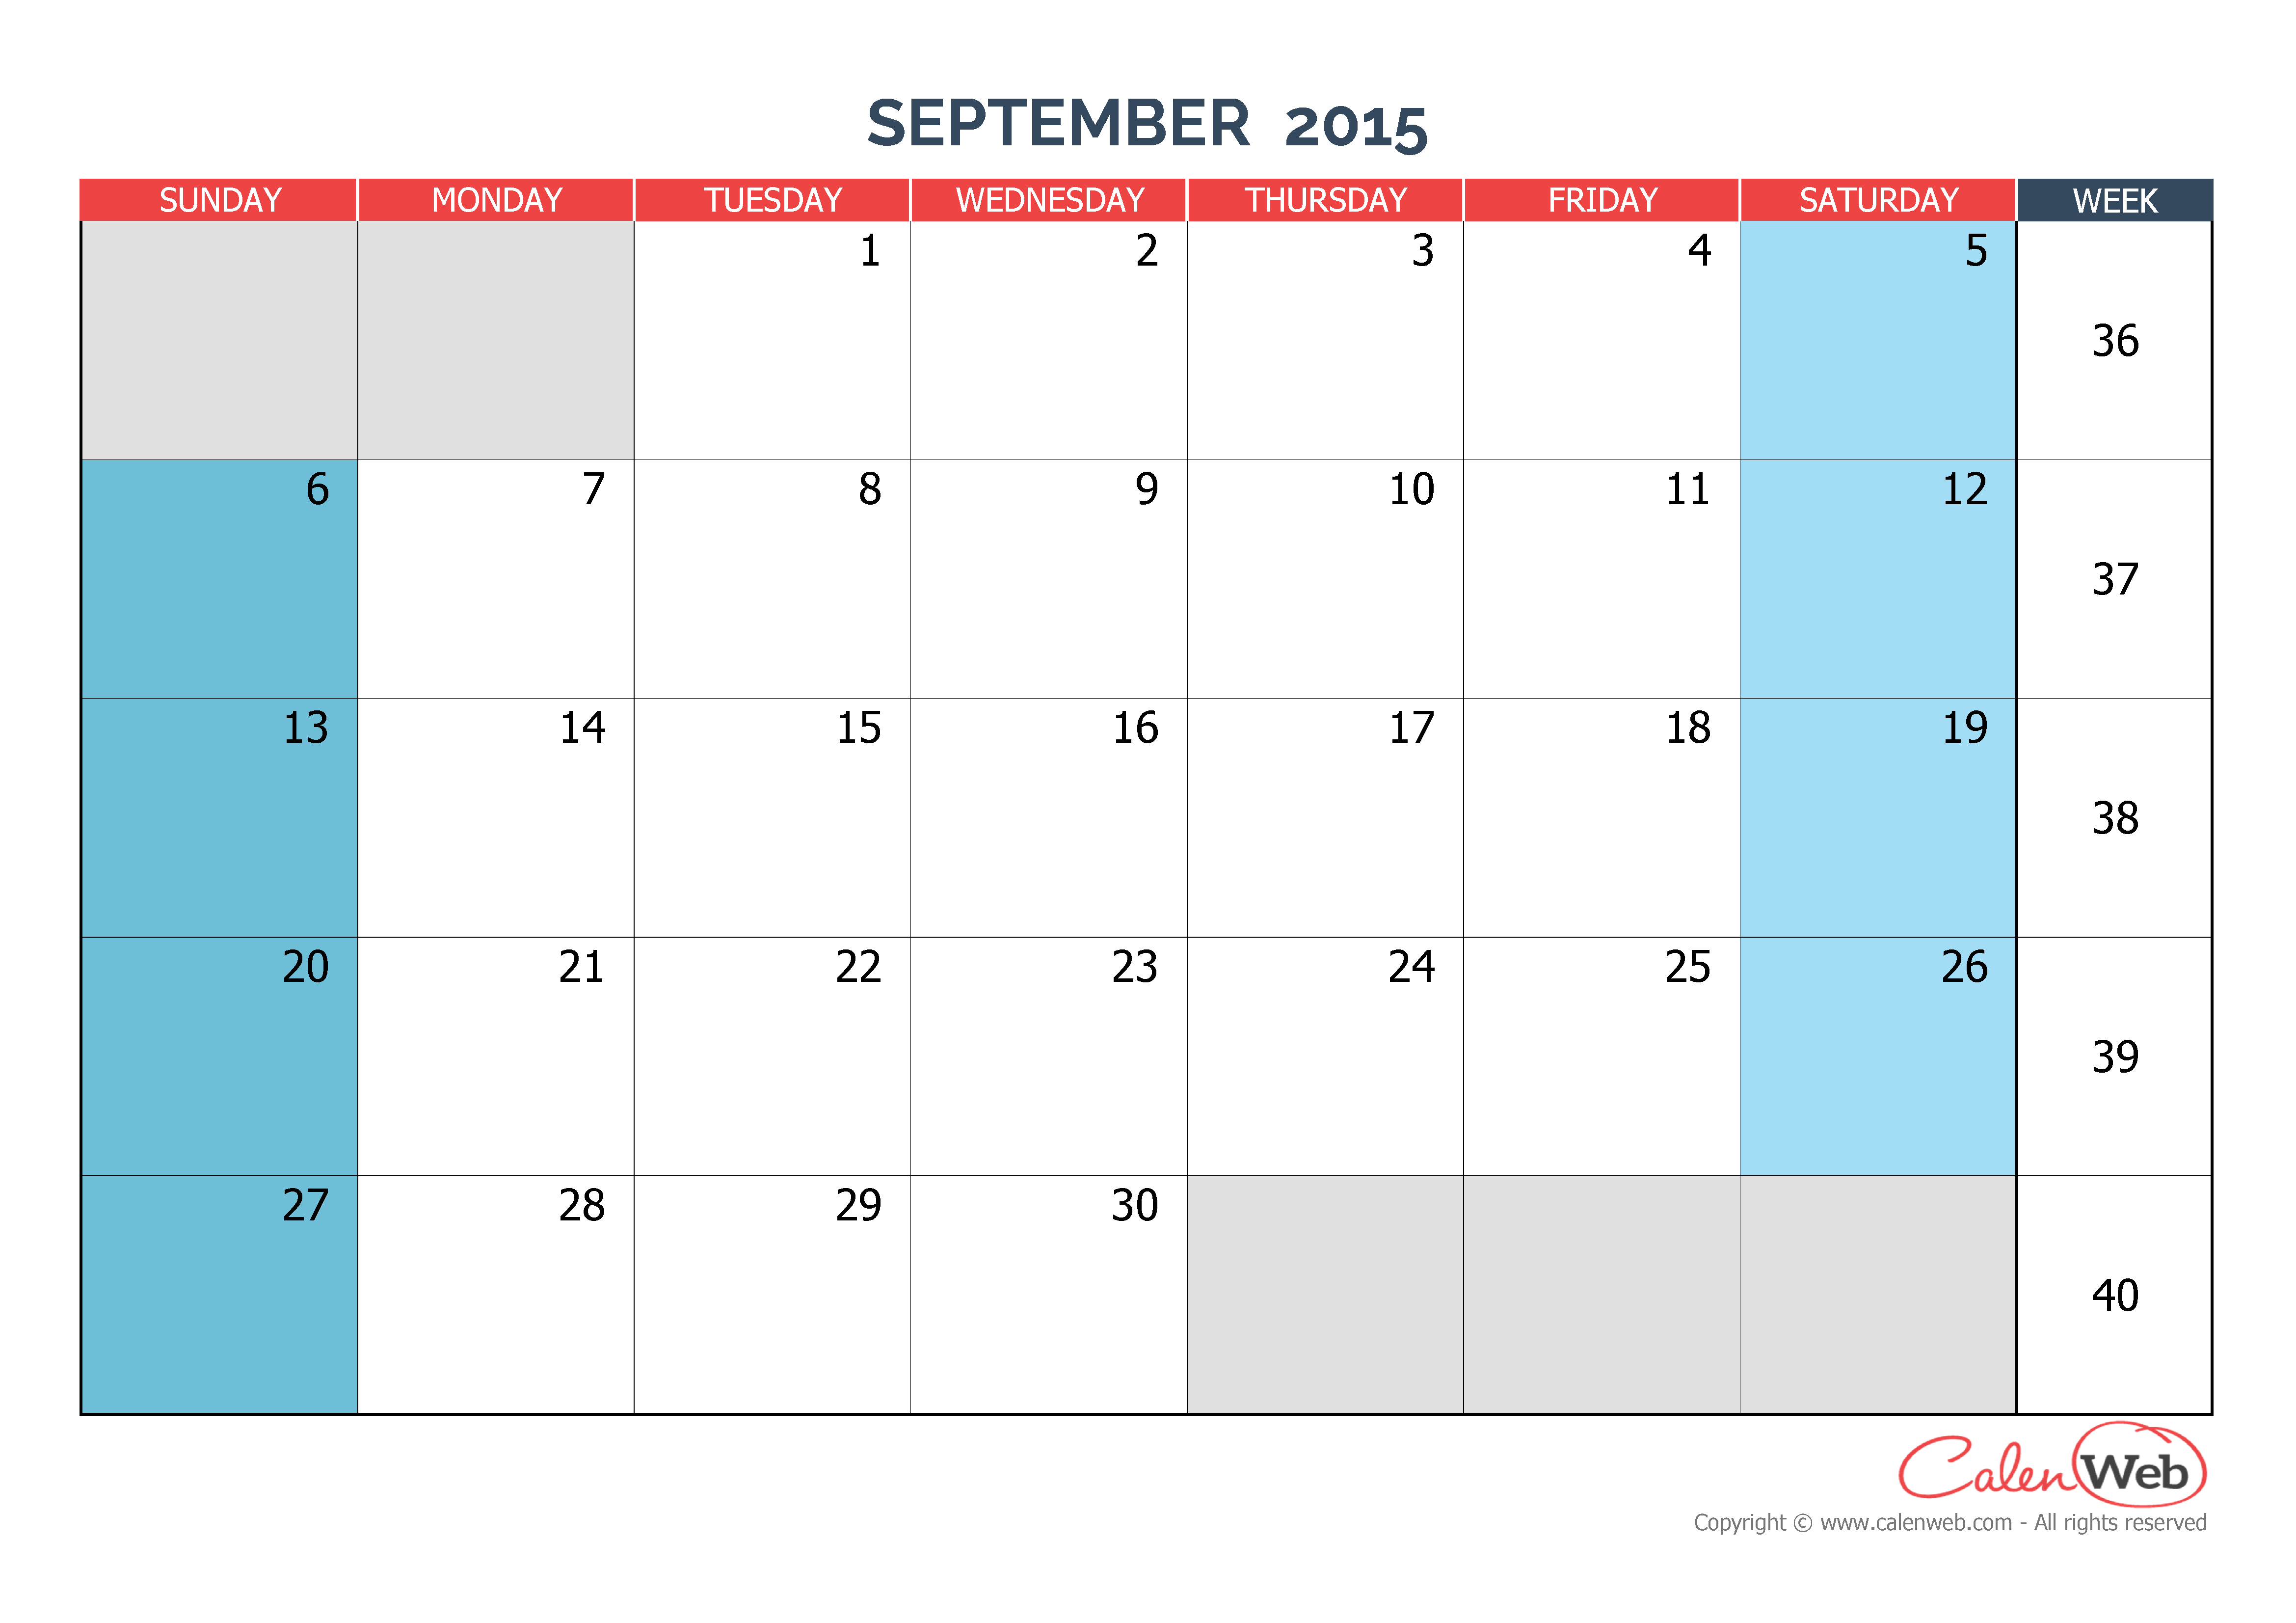 monthly calendar month of september 2015 the week starts on sunday